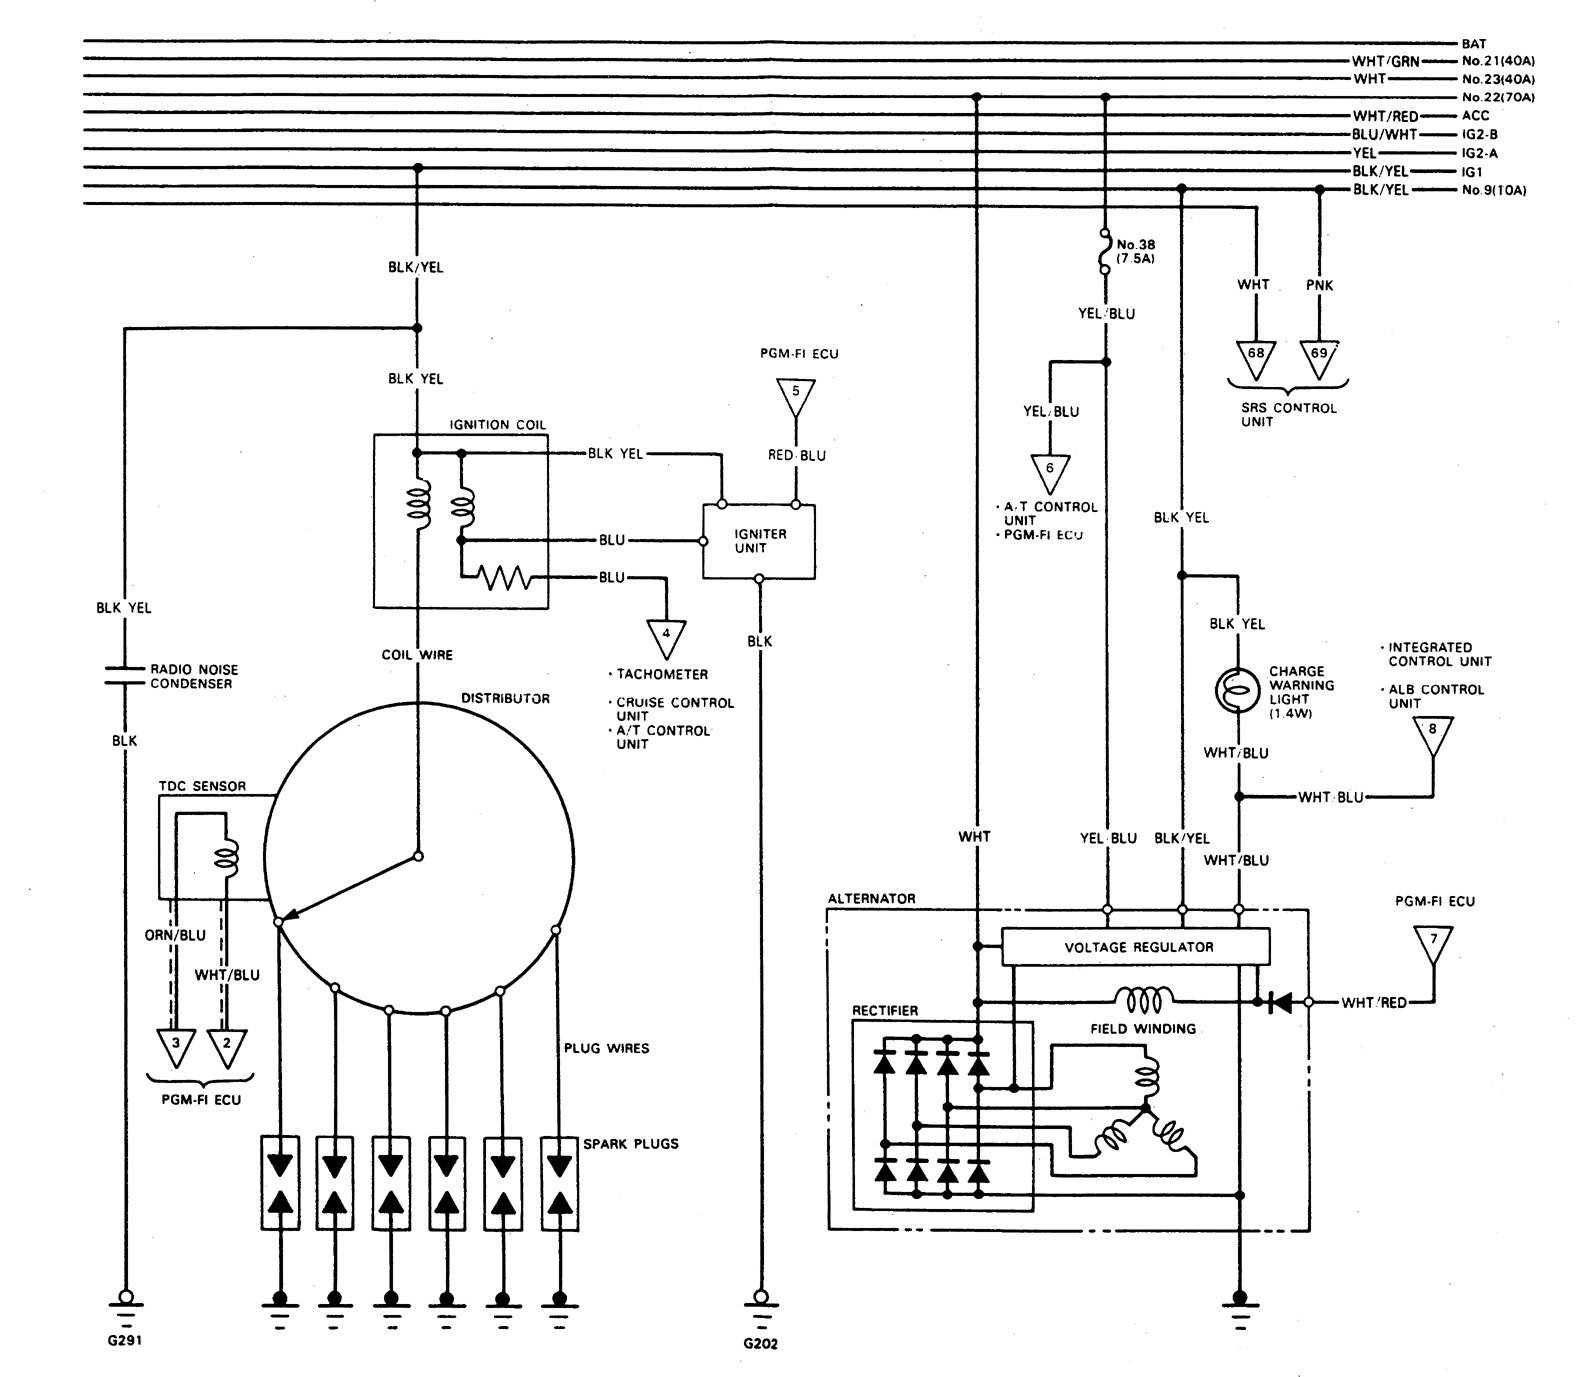 Wiring Diagram 93 Xj6 Charging Diagrams Yzf600r 1994 Acura Legend Images Xs650 Mark Viii